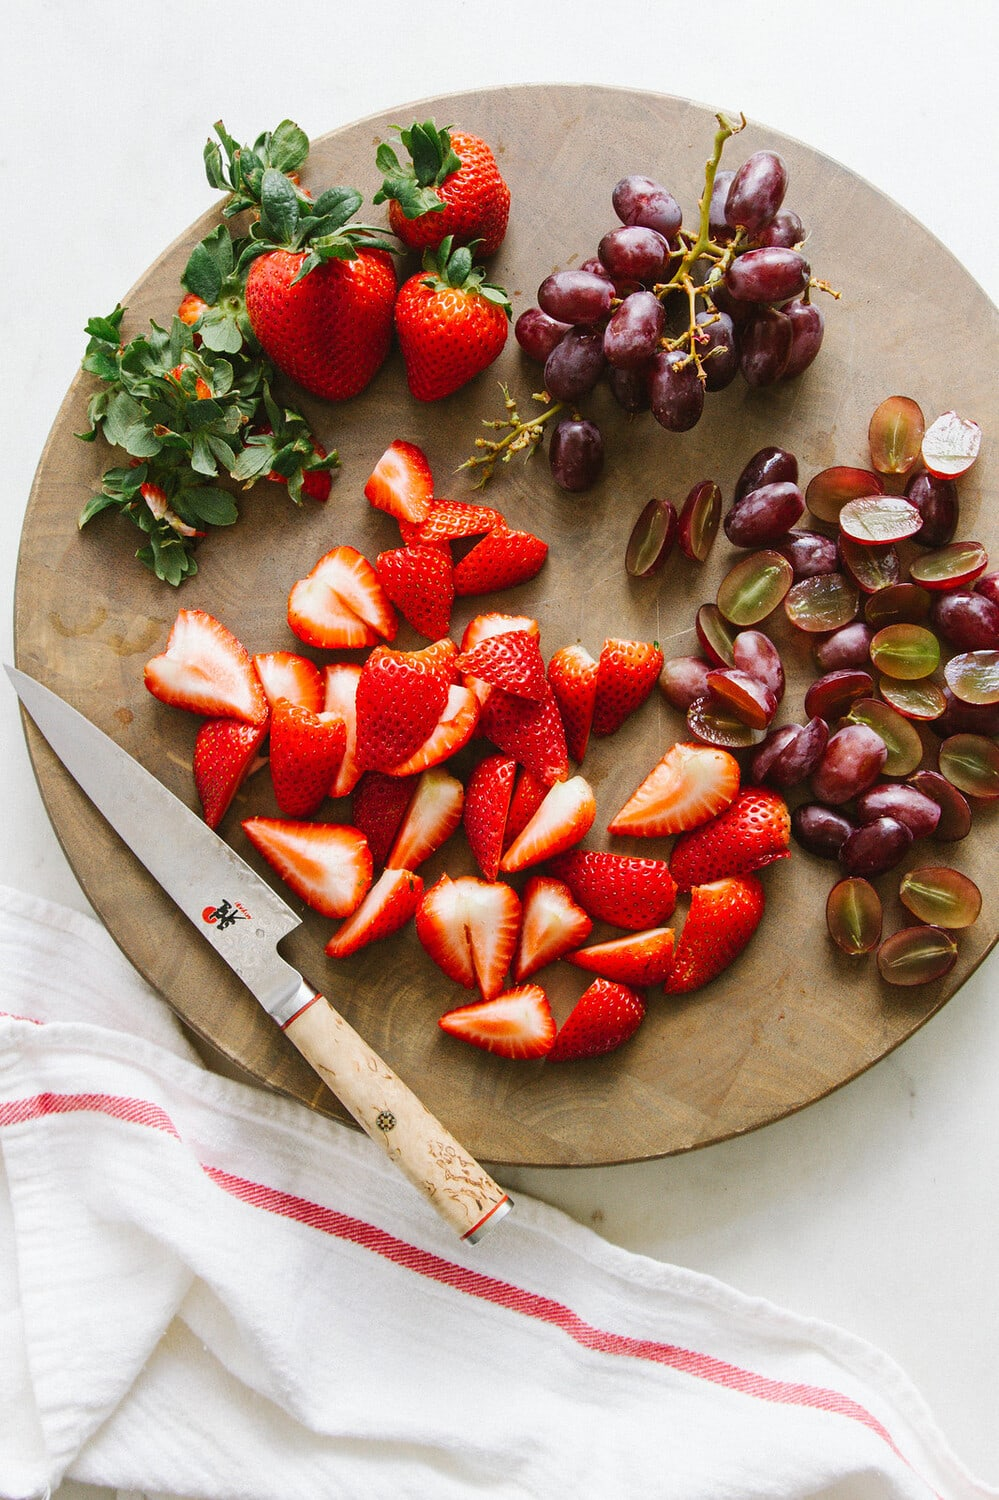 top down view of sliced strawberries and grapes on a circular wooden cutting board.